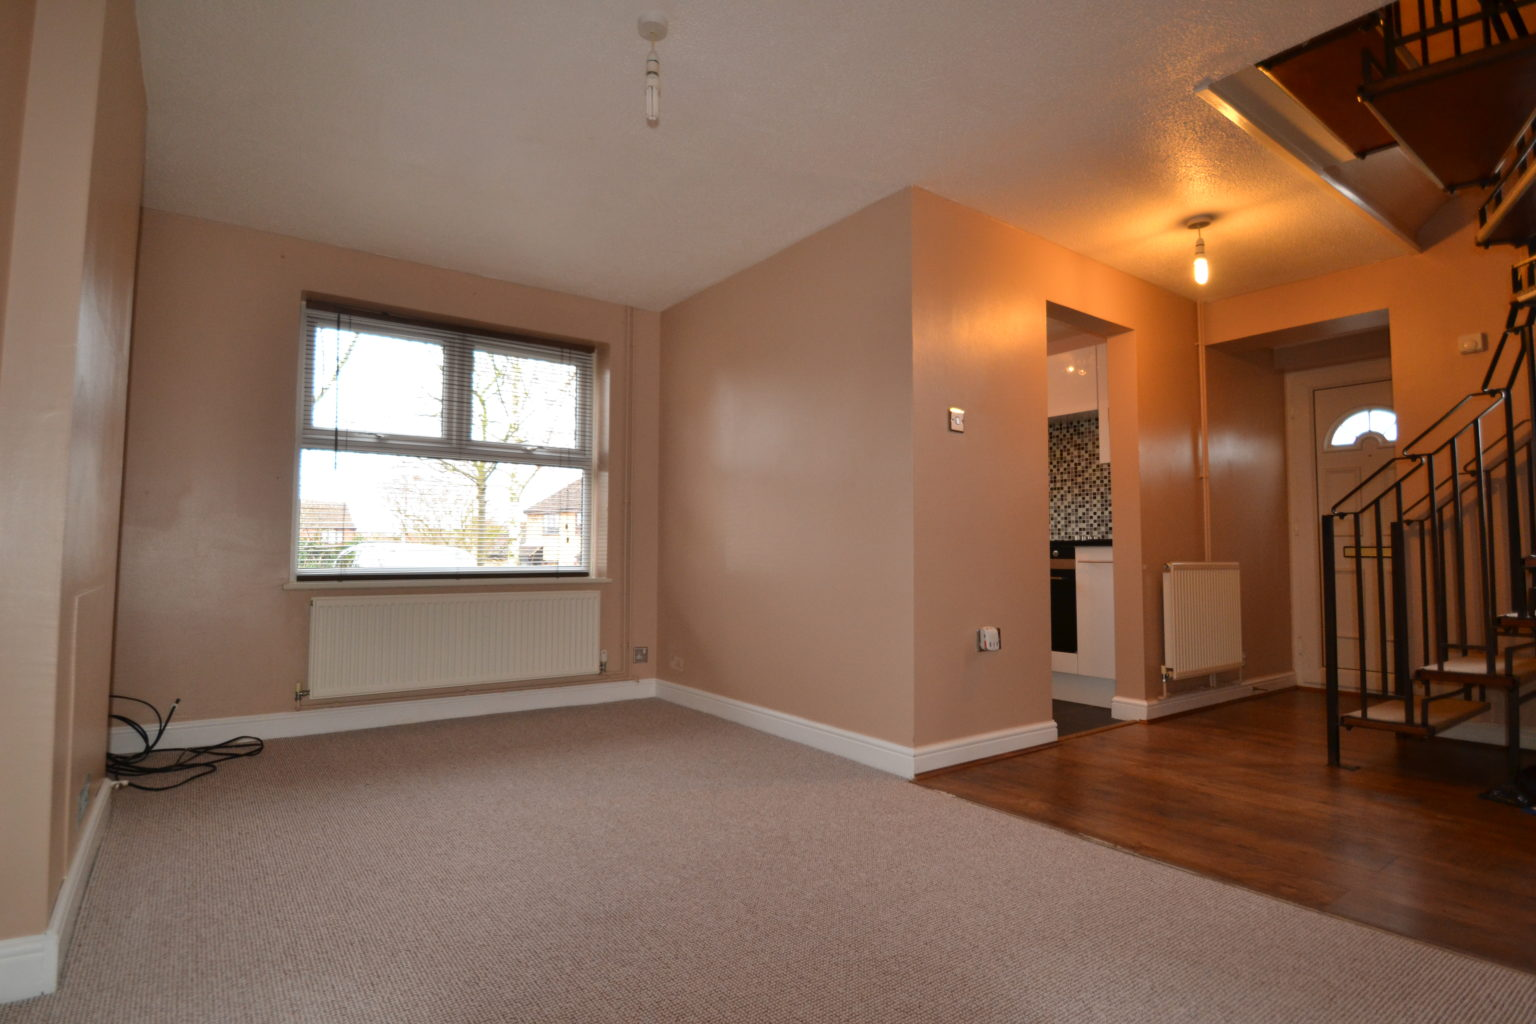 Property to let in Spixworth